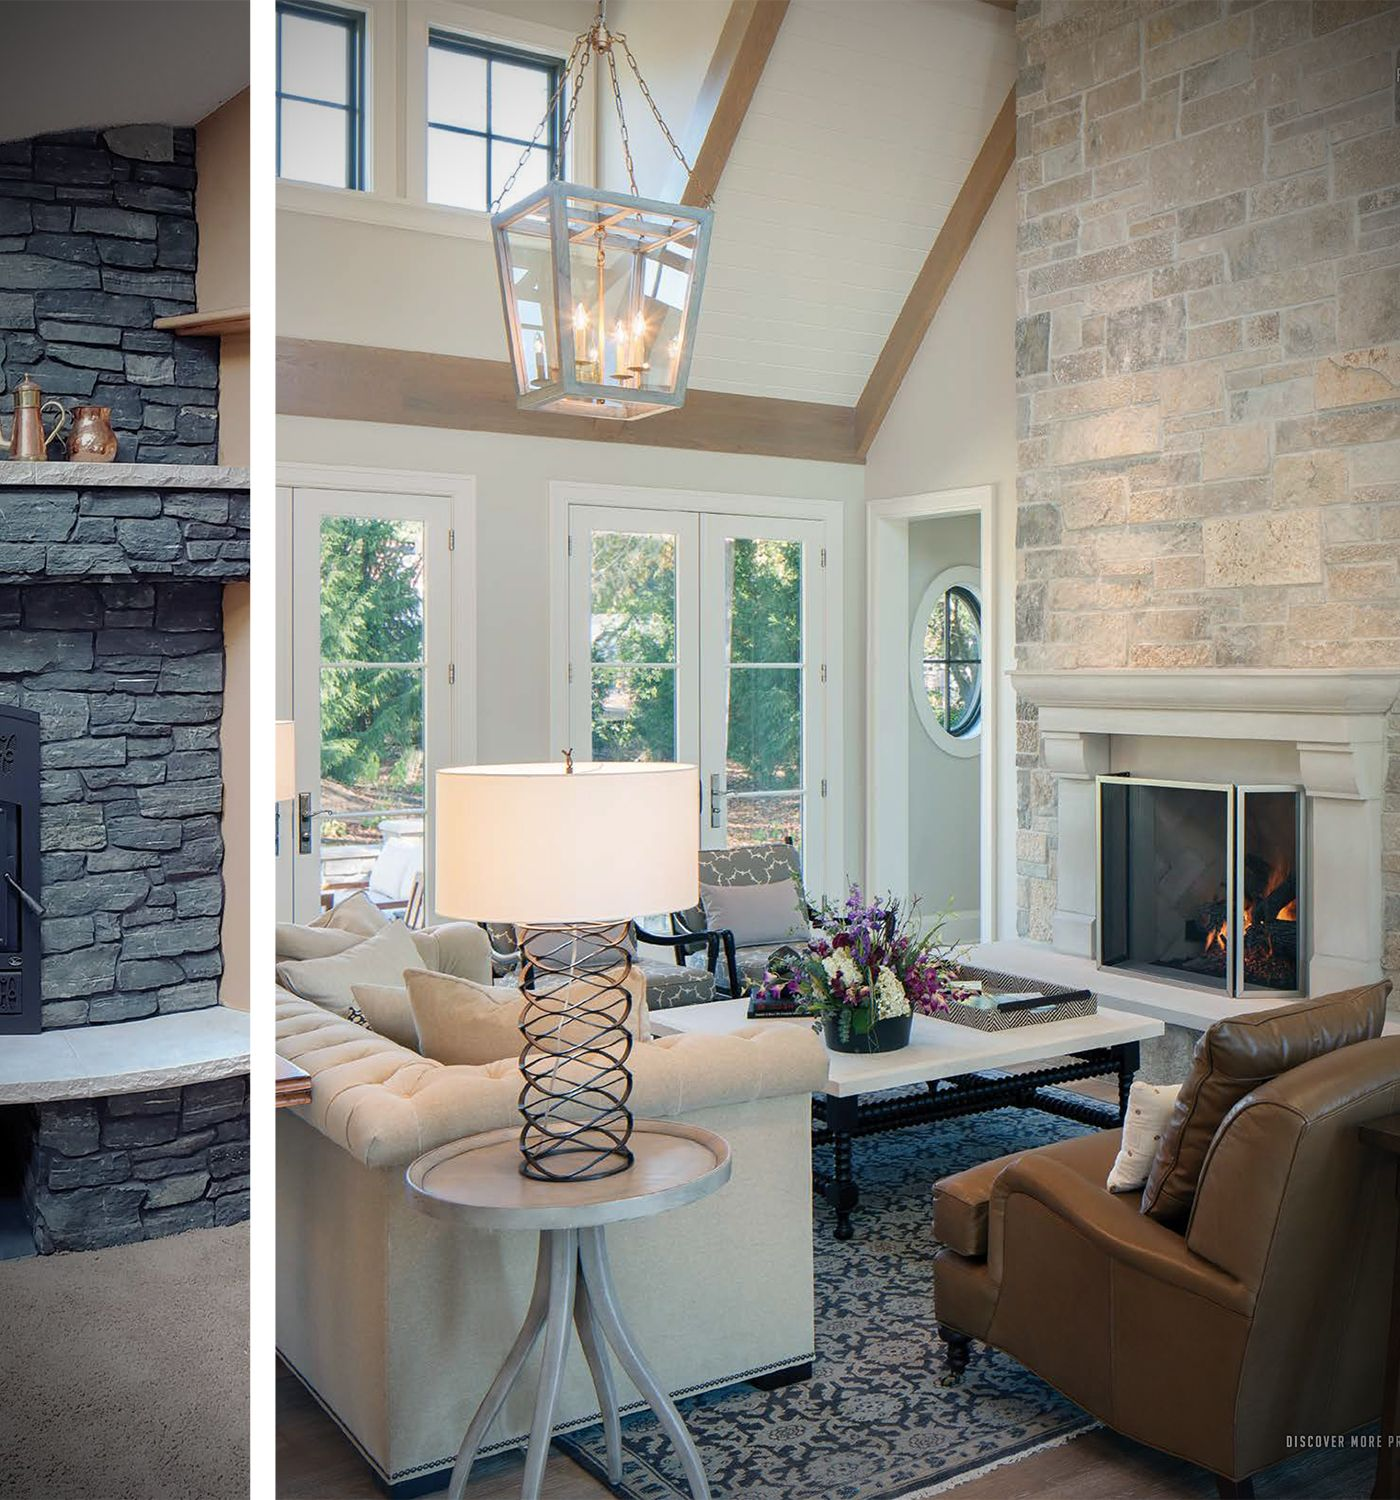 Natural Stone Fireplace Living Room Interior Outdoor Patio Stone Veneers In 2020 Natural Stone Fireplaces Stacked Stone Walls Stone Walls Interior #stone #fireplace #in #living #room